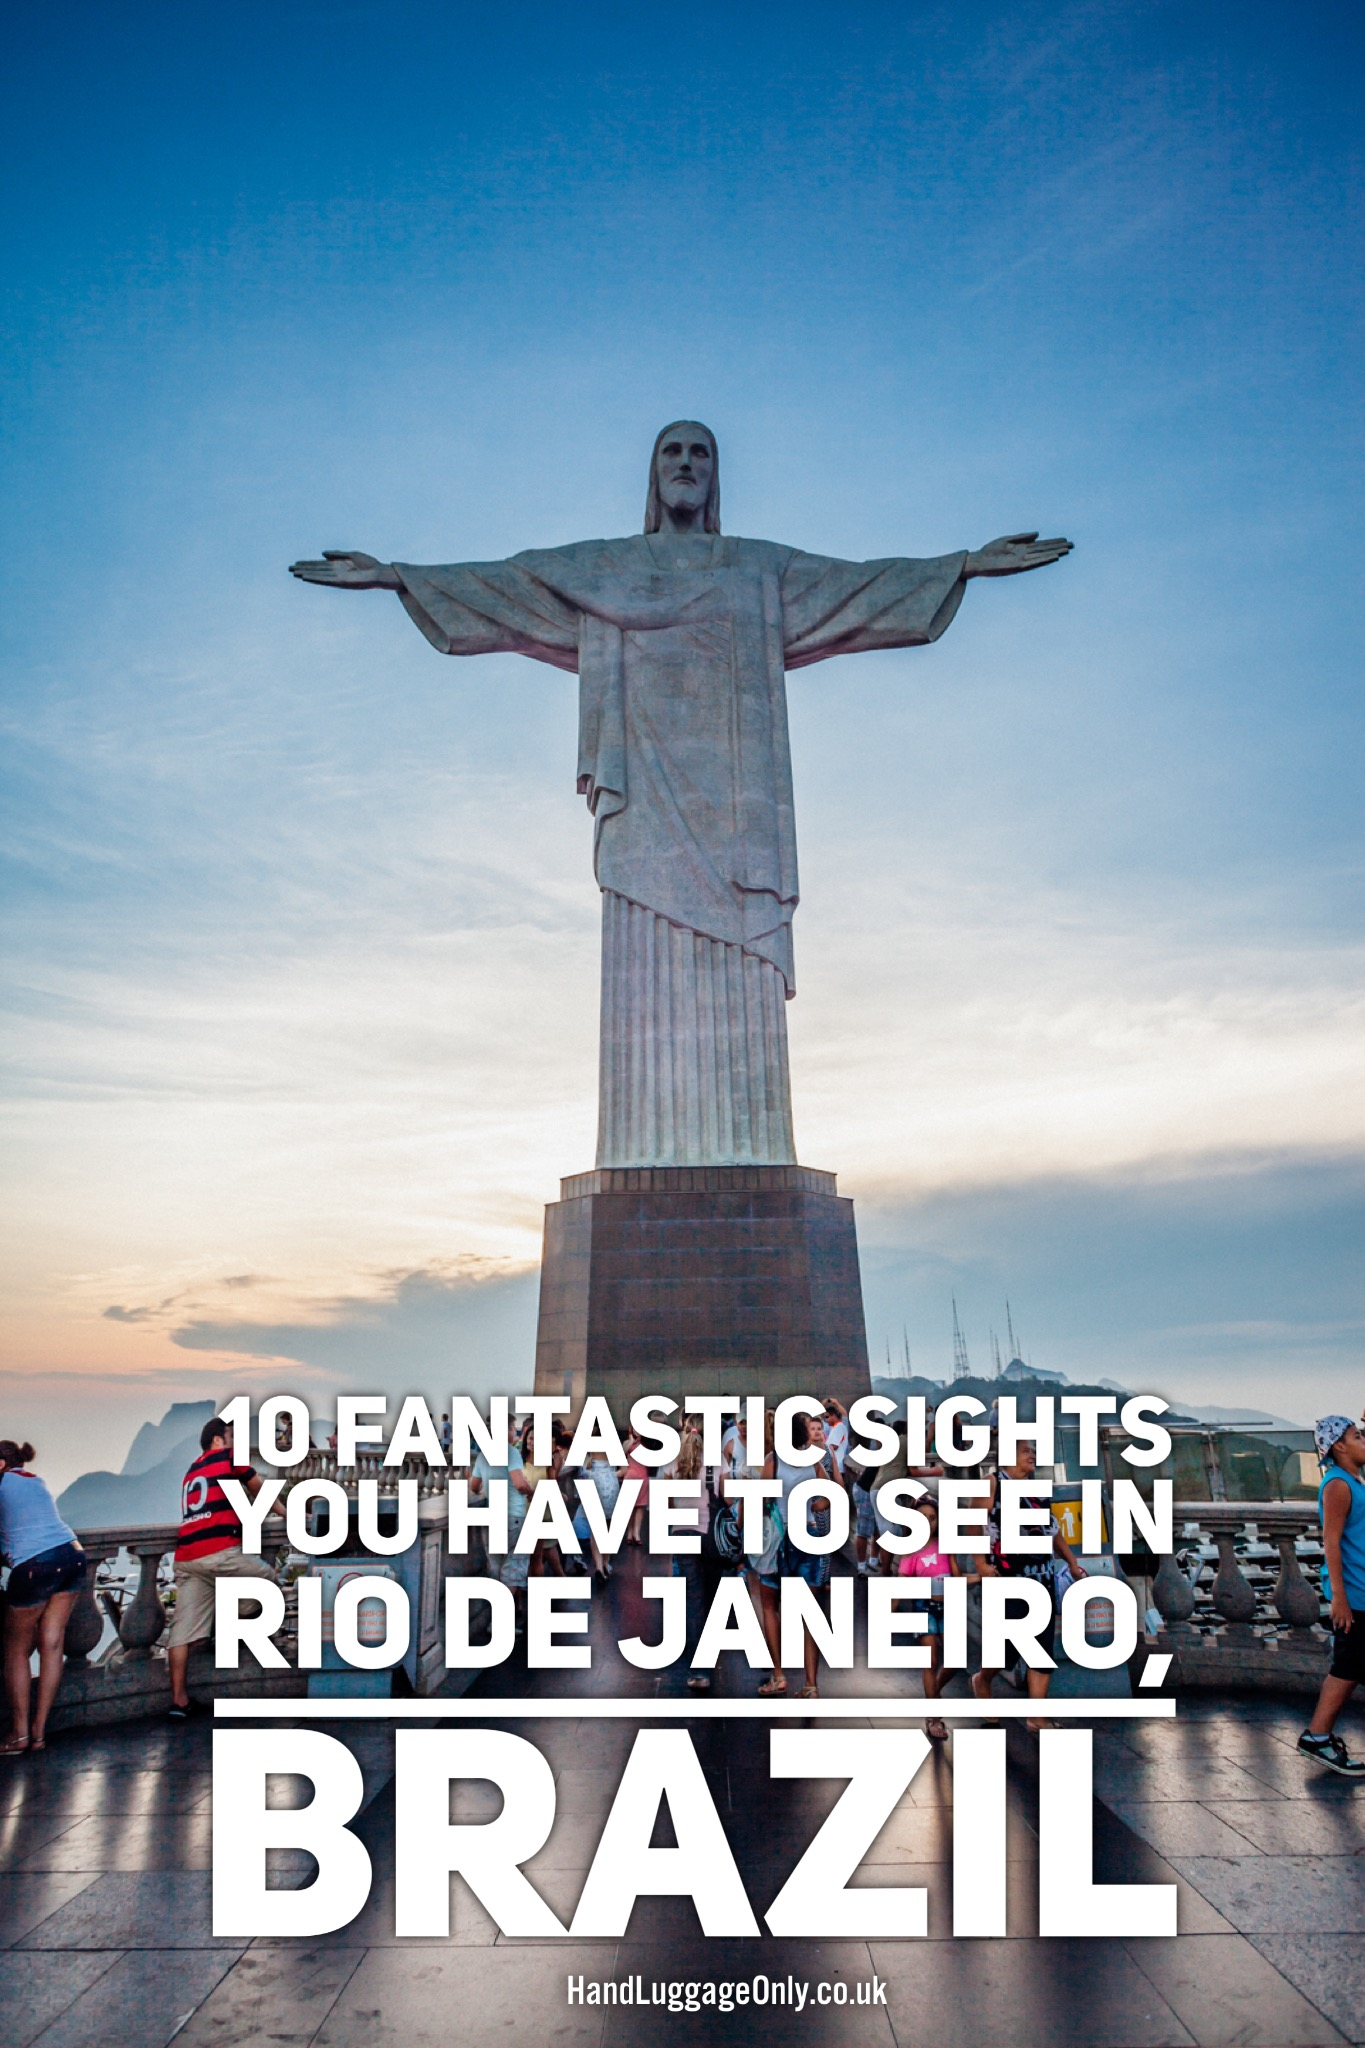 10 Fantastic Sights You Have To See In Rio de Janeiro, Brazil (13)